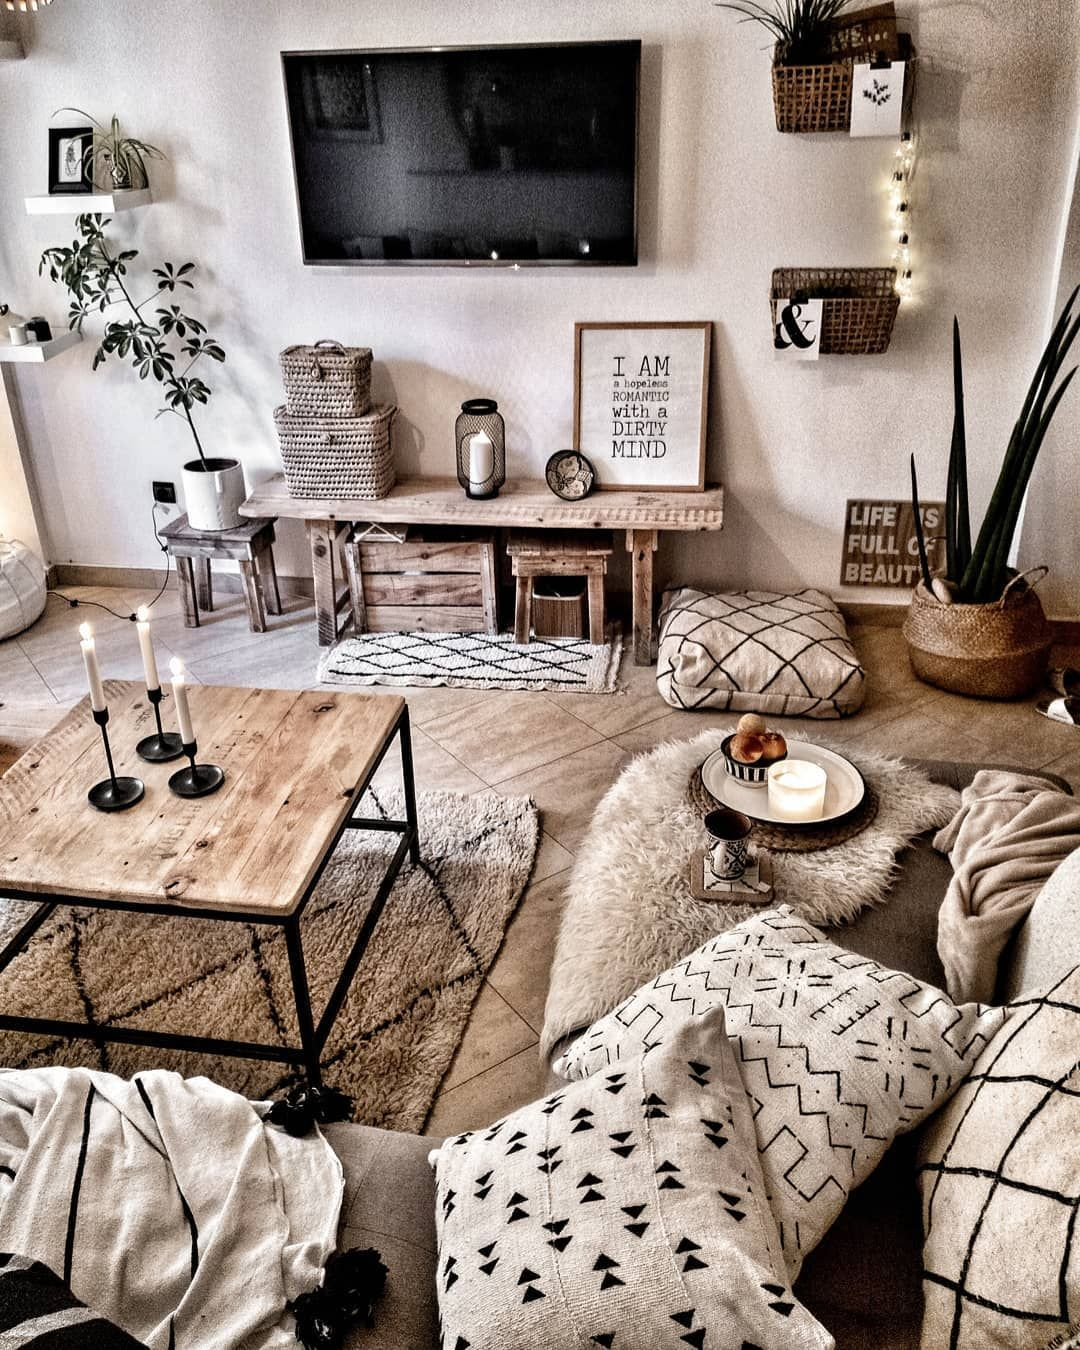 c Dari Design on instagram The Boho Chic Living Style The Boho style stands for unconventional living in an imperfect Look which is at the same time iridescent and natura...